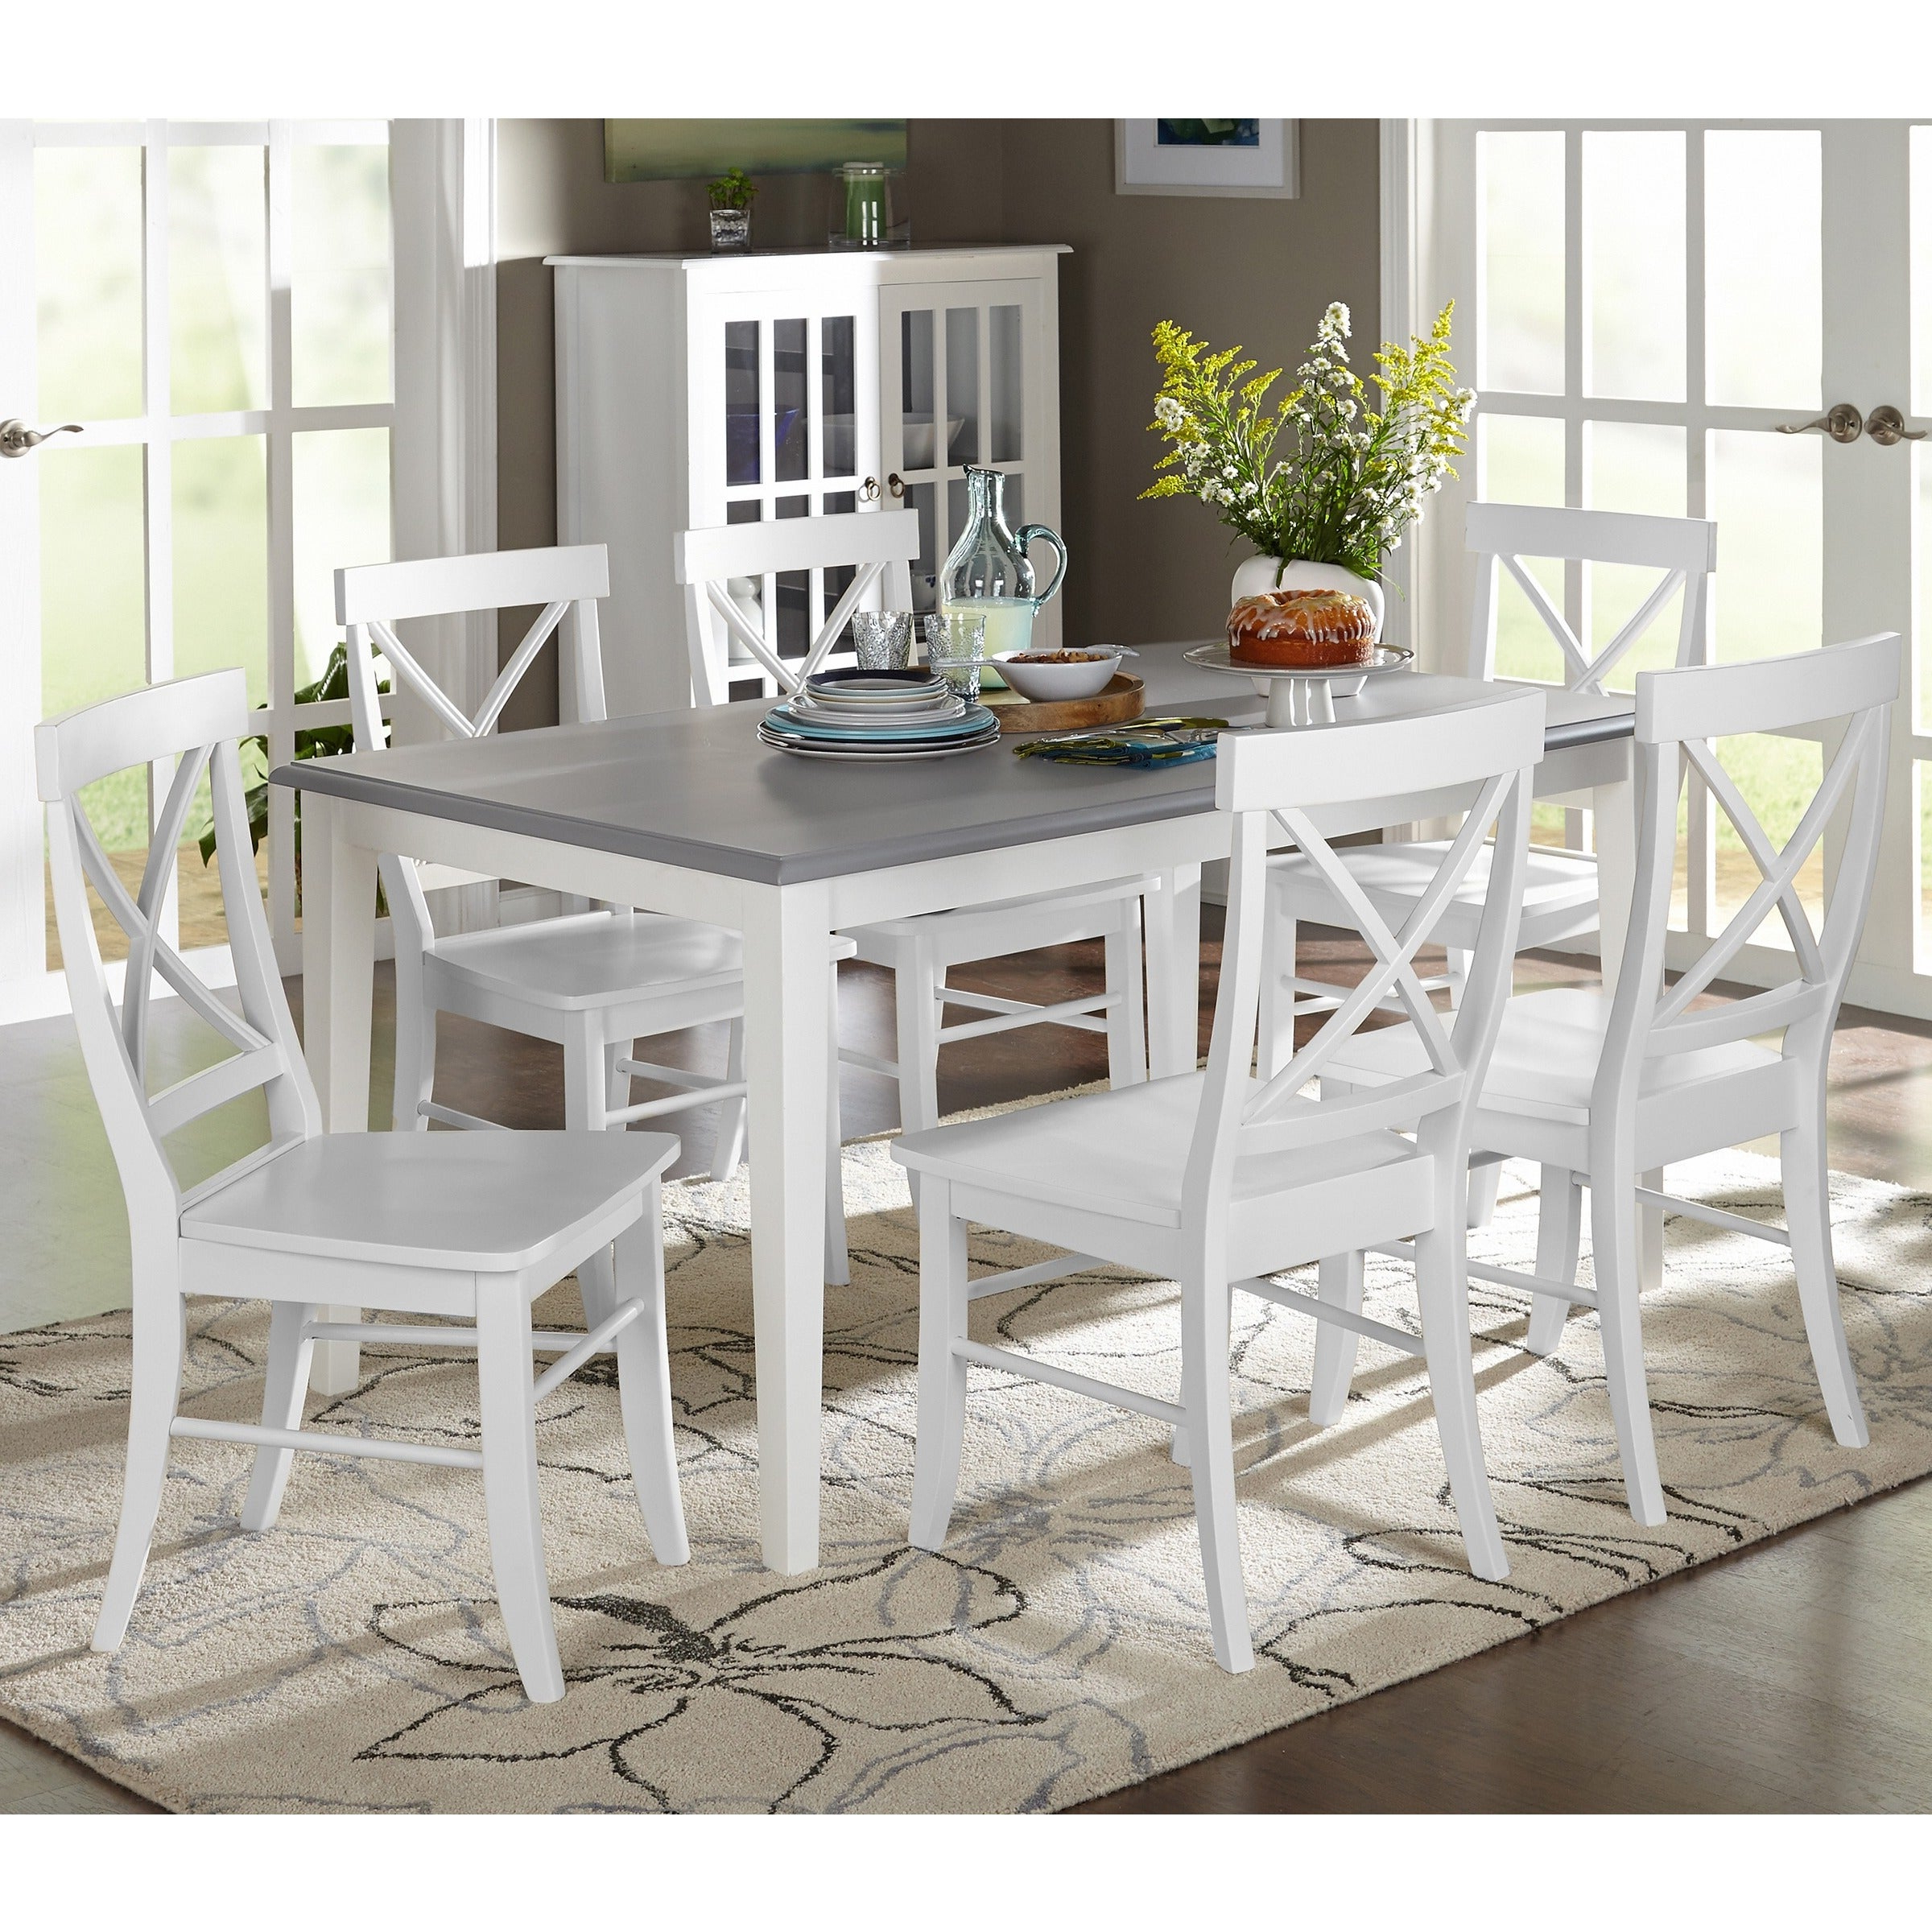 Autberry 5 Piece Dining Sets For Preferred Buy 7 Piece Sets Kitchen & Dining Room Sets Online At Overstock (View 15 of 20)